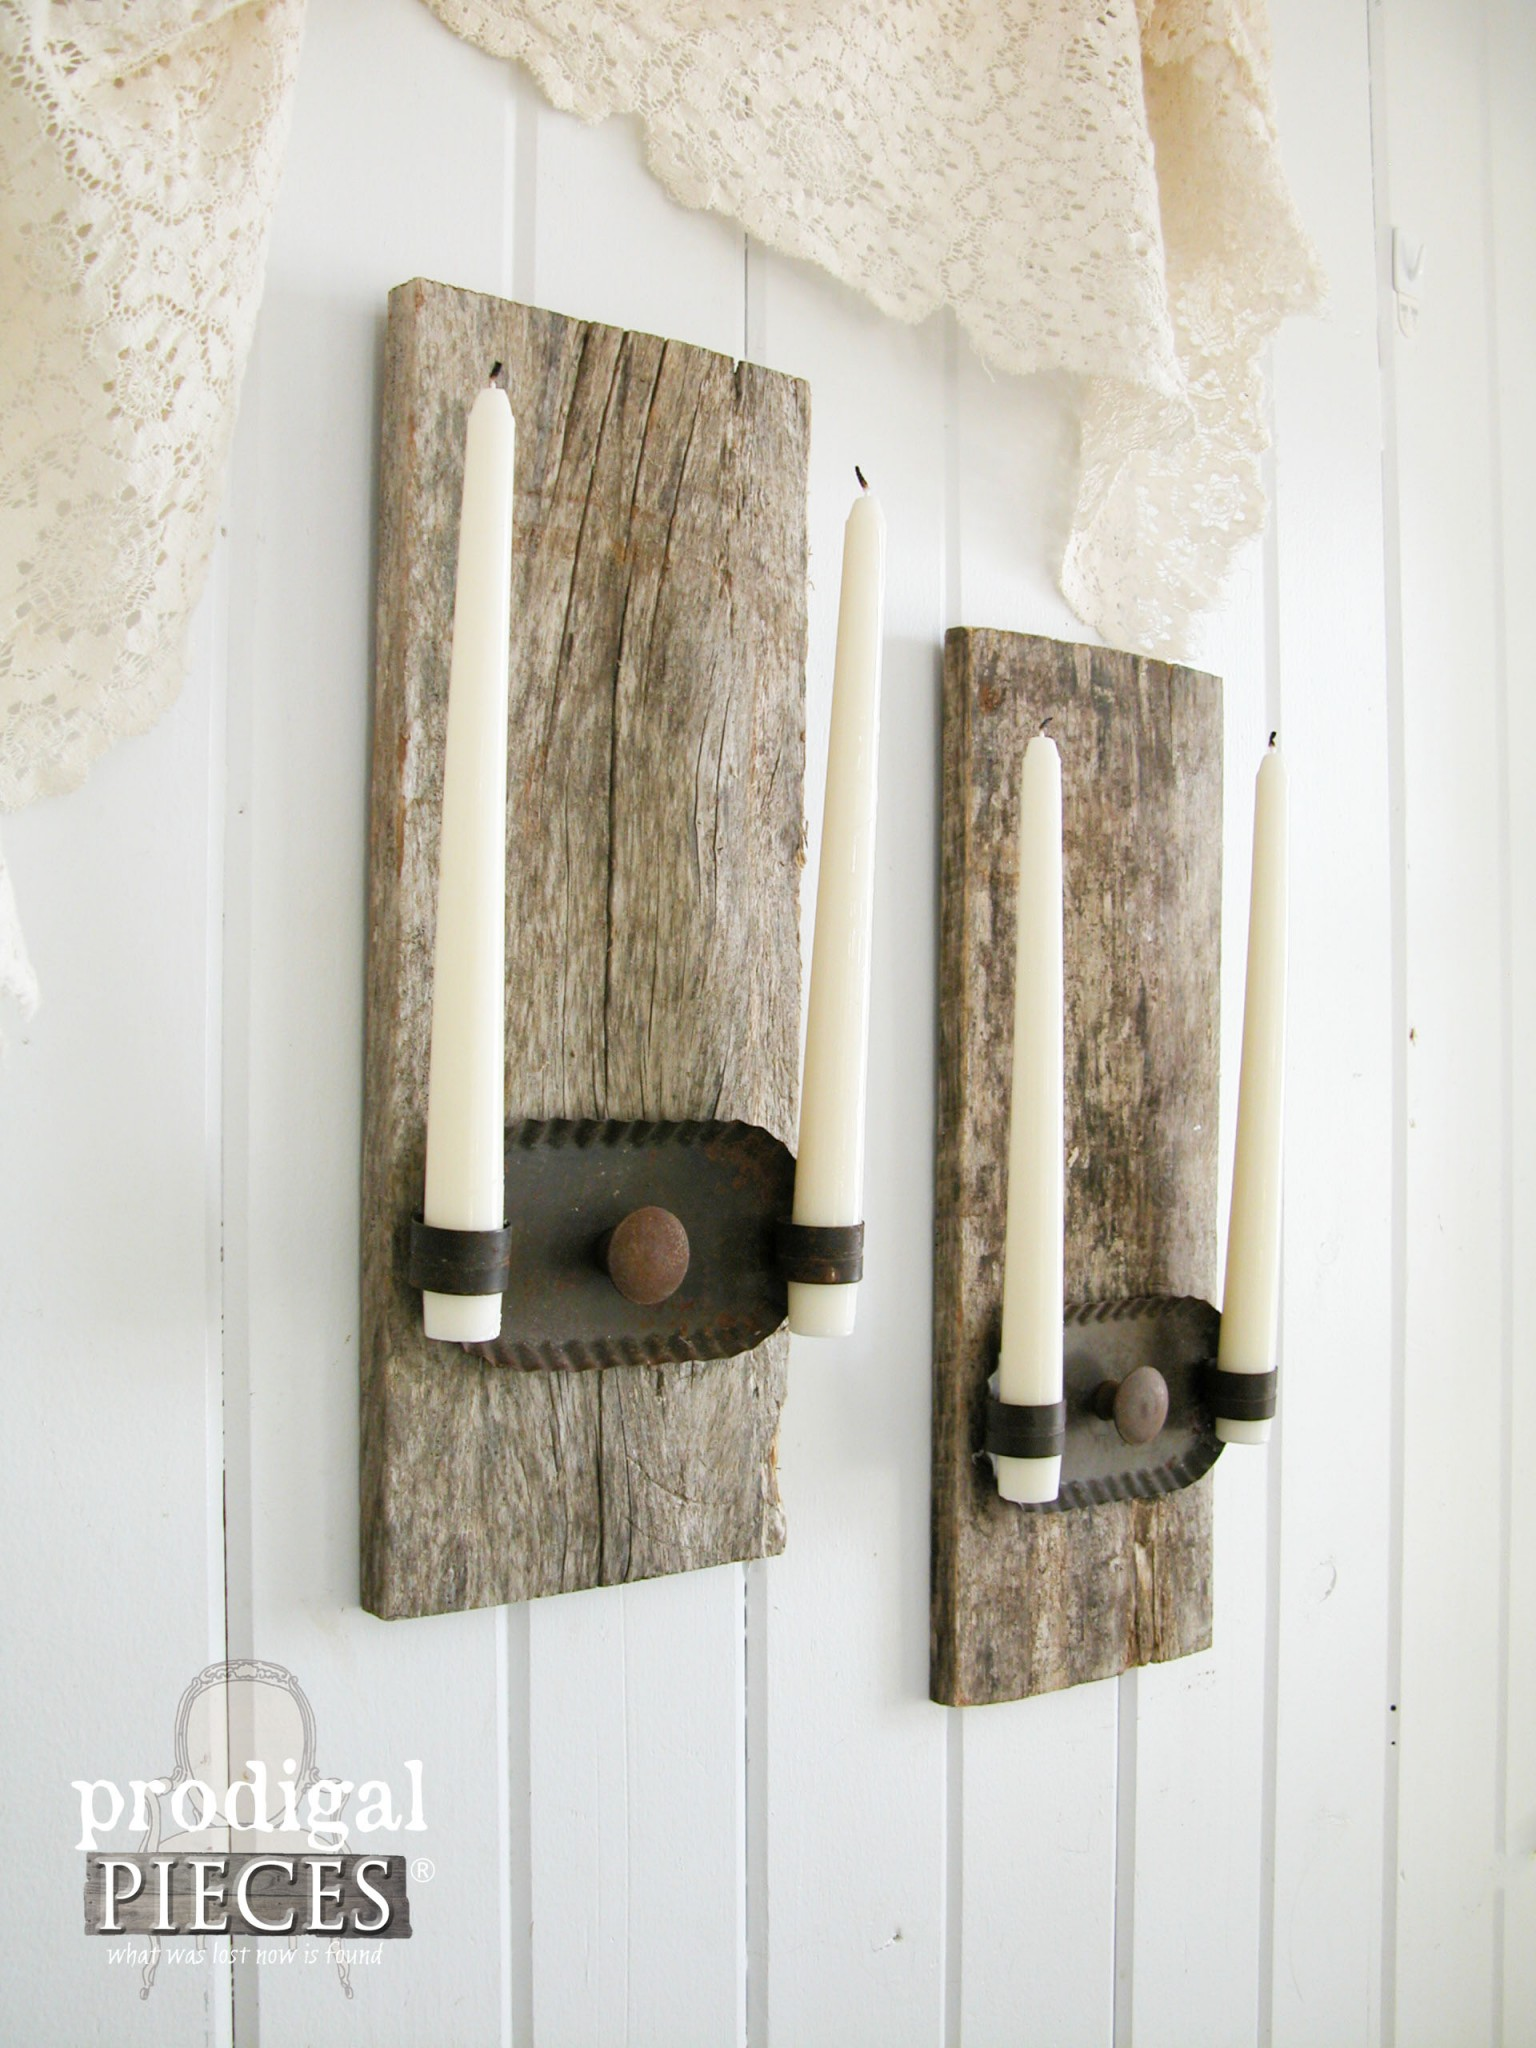 Rustic Reclaimed Candle Sconces from Barn Wood and Junk by Prodigal Pieces | www.prodigalpieces.com